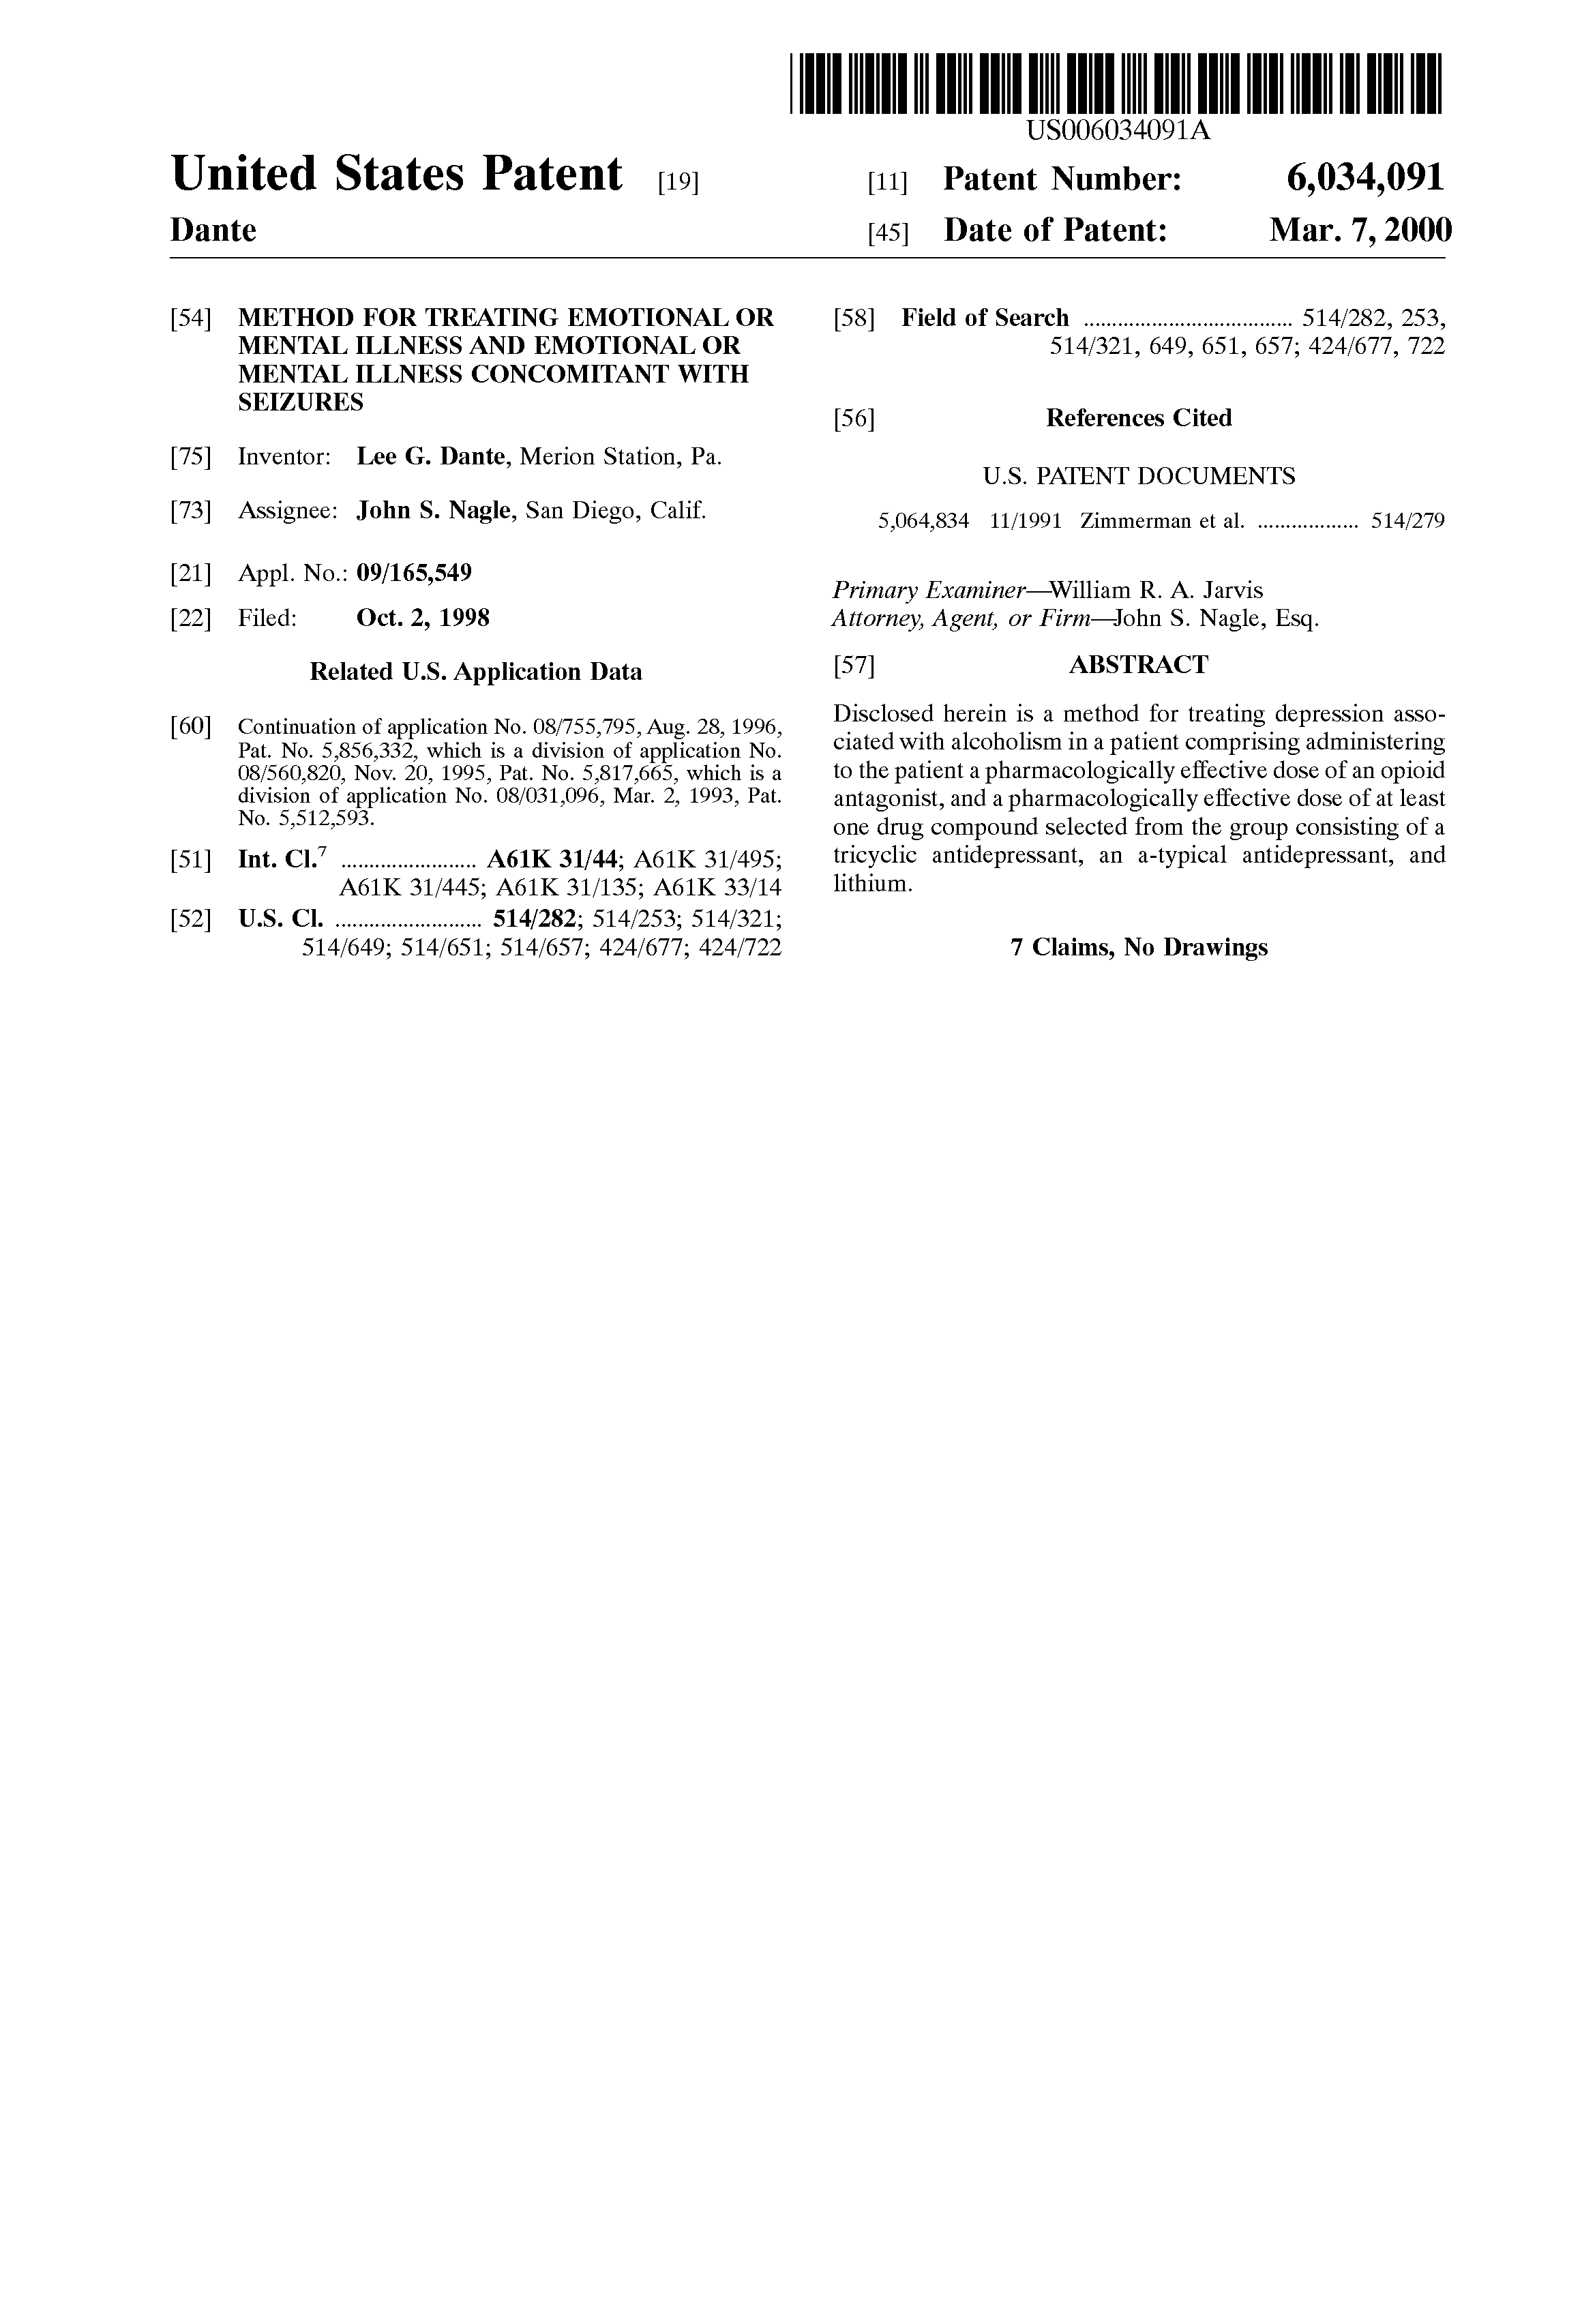 US6034091A - Method for treating emotional or mental illness